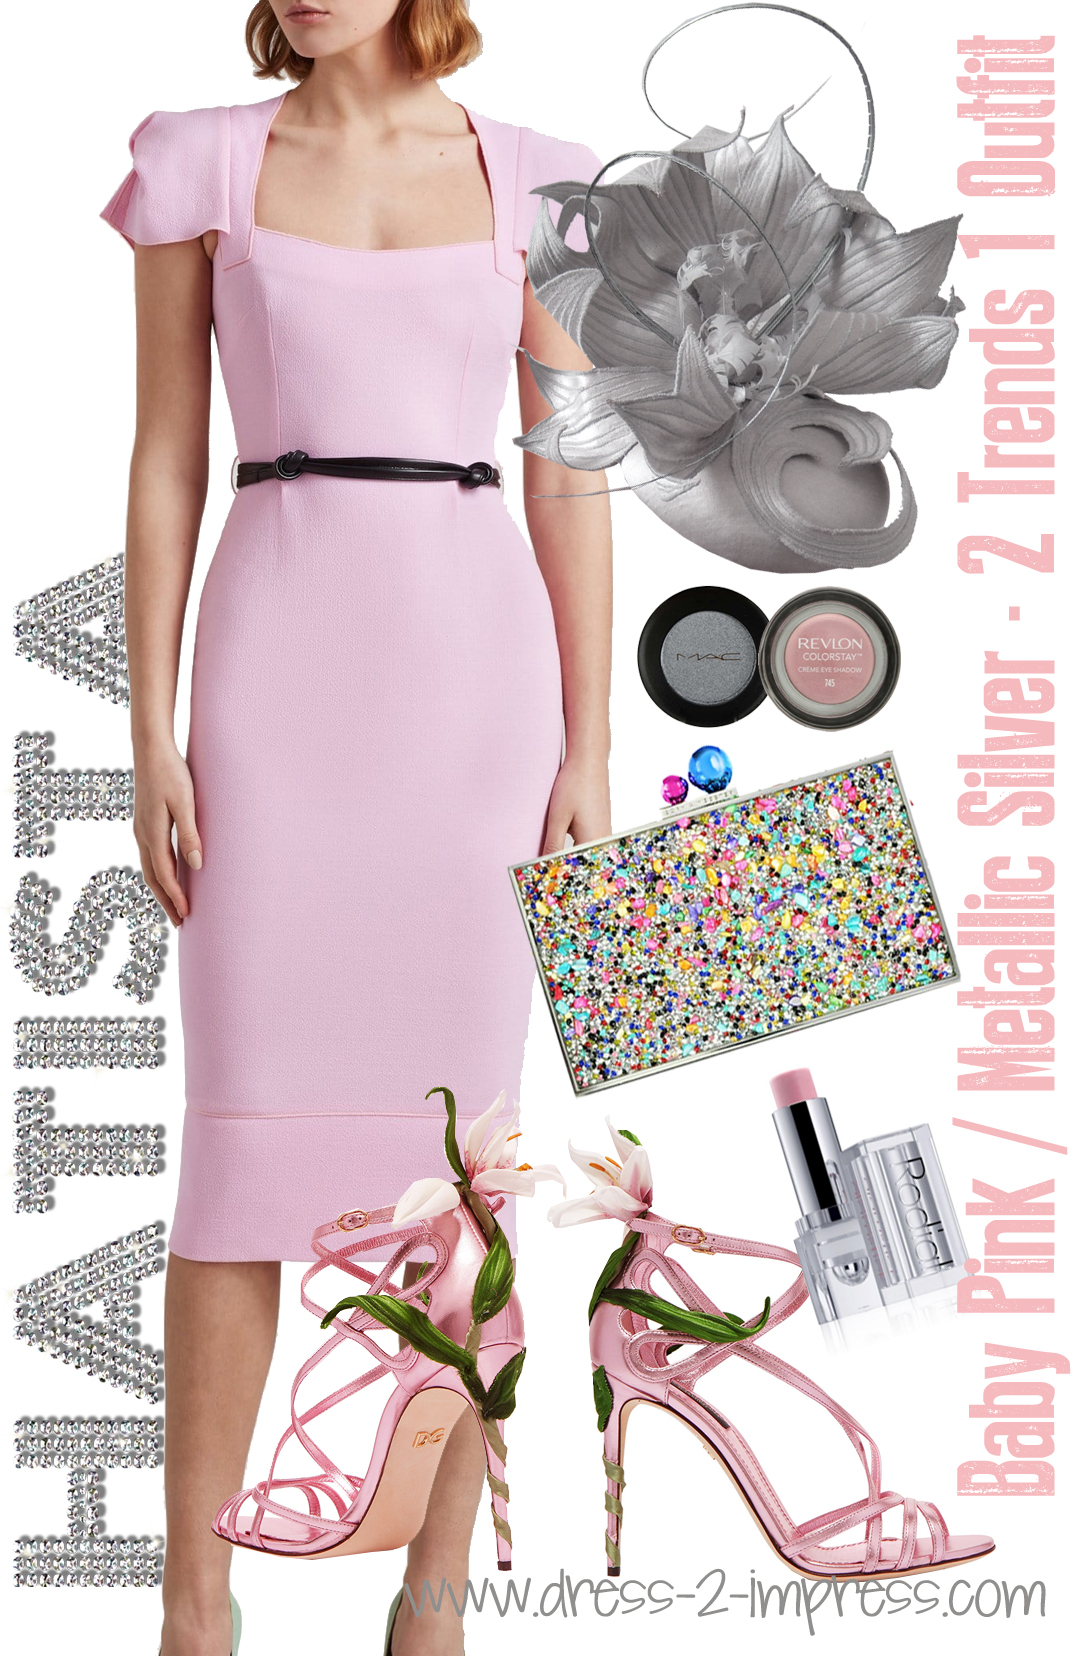 What to wear with Pink. What to wear with Baby Pink. What to wear with a Baby Pink Dress. How to Wear Pink - What to wear to the races. What to wear for Royal Ascot. Ladies day outfits. Outfit ideas for the Kentucky Oaks Day. Pink Mother of the Bride Outfits #wearpink #motherofthevride #fashion #metallics #silverhat #outfittips